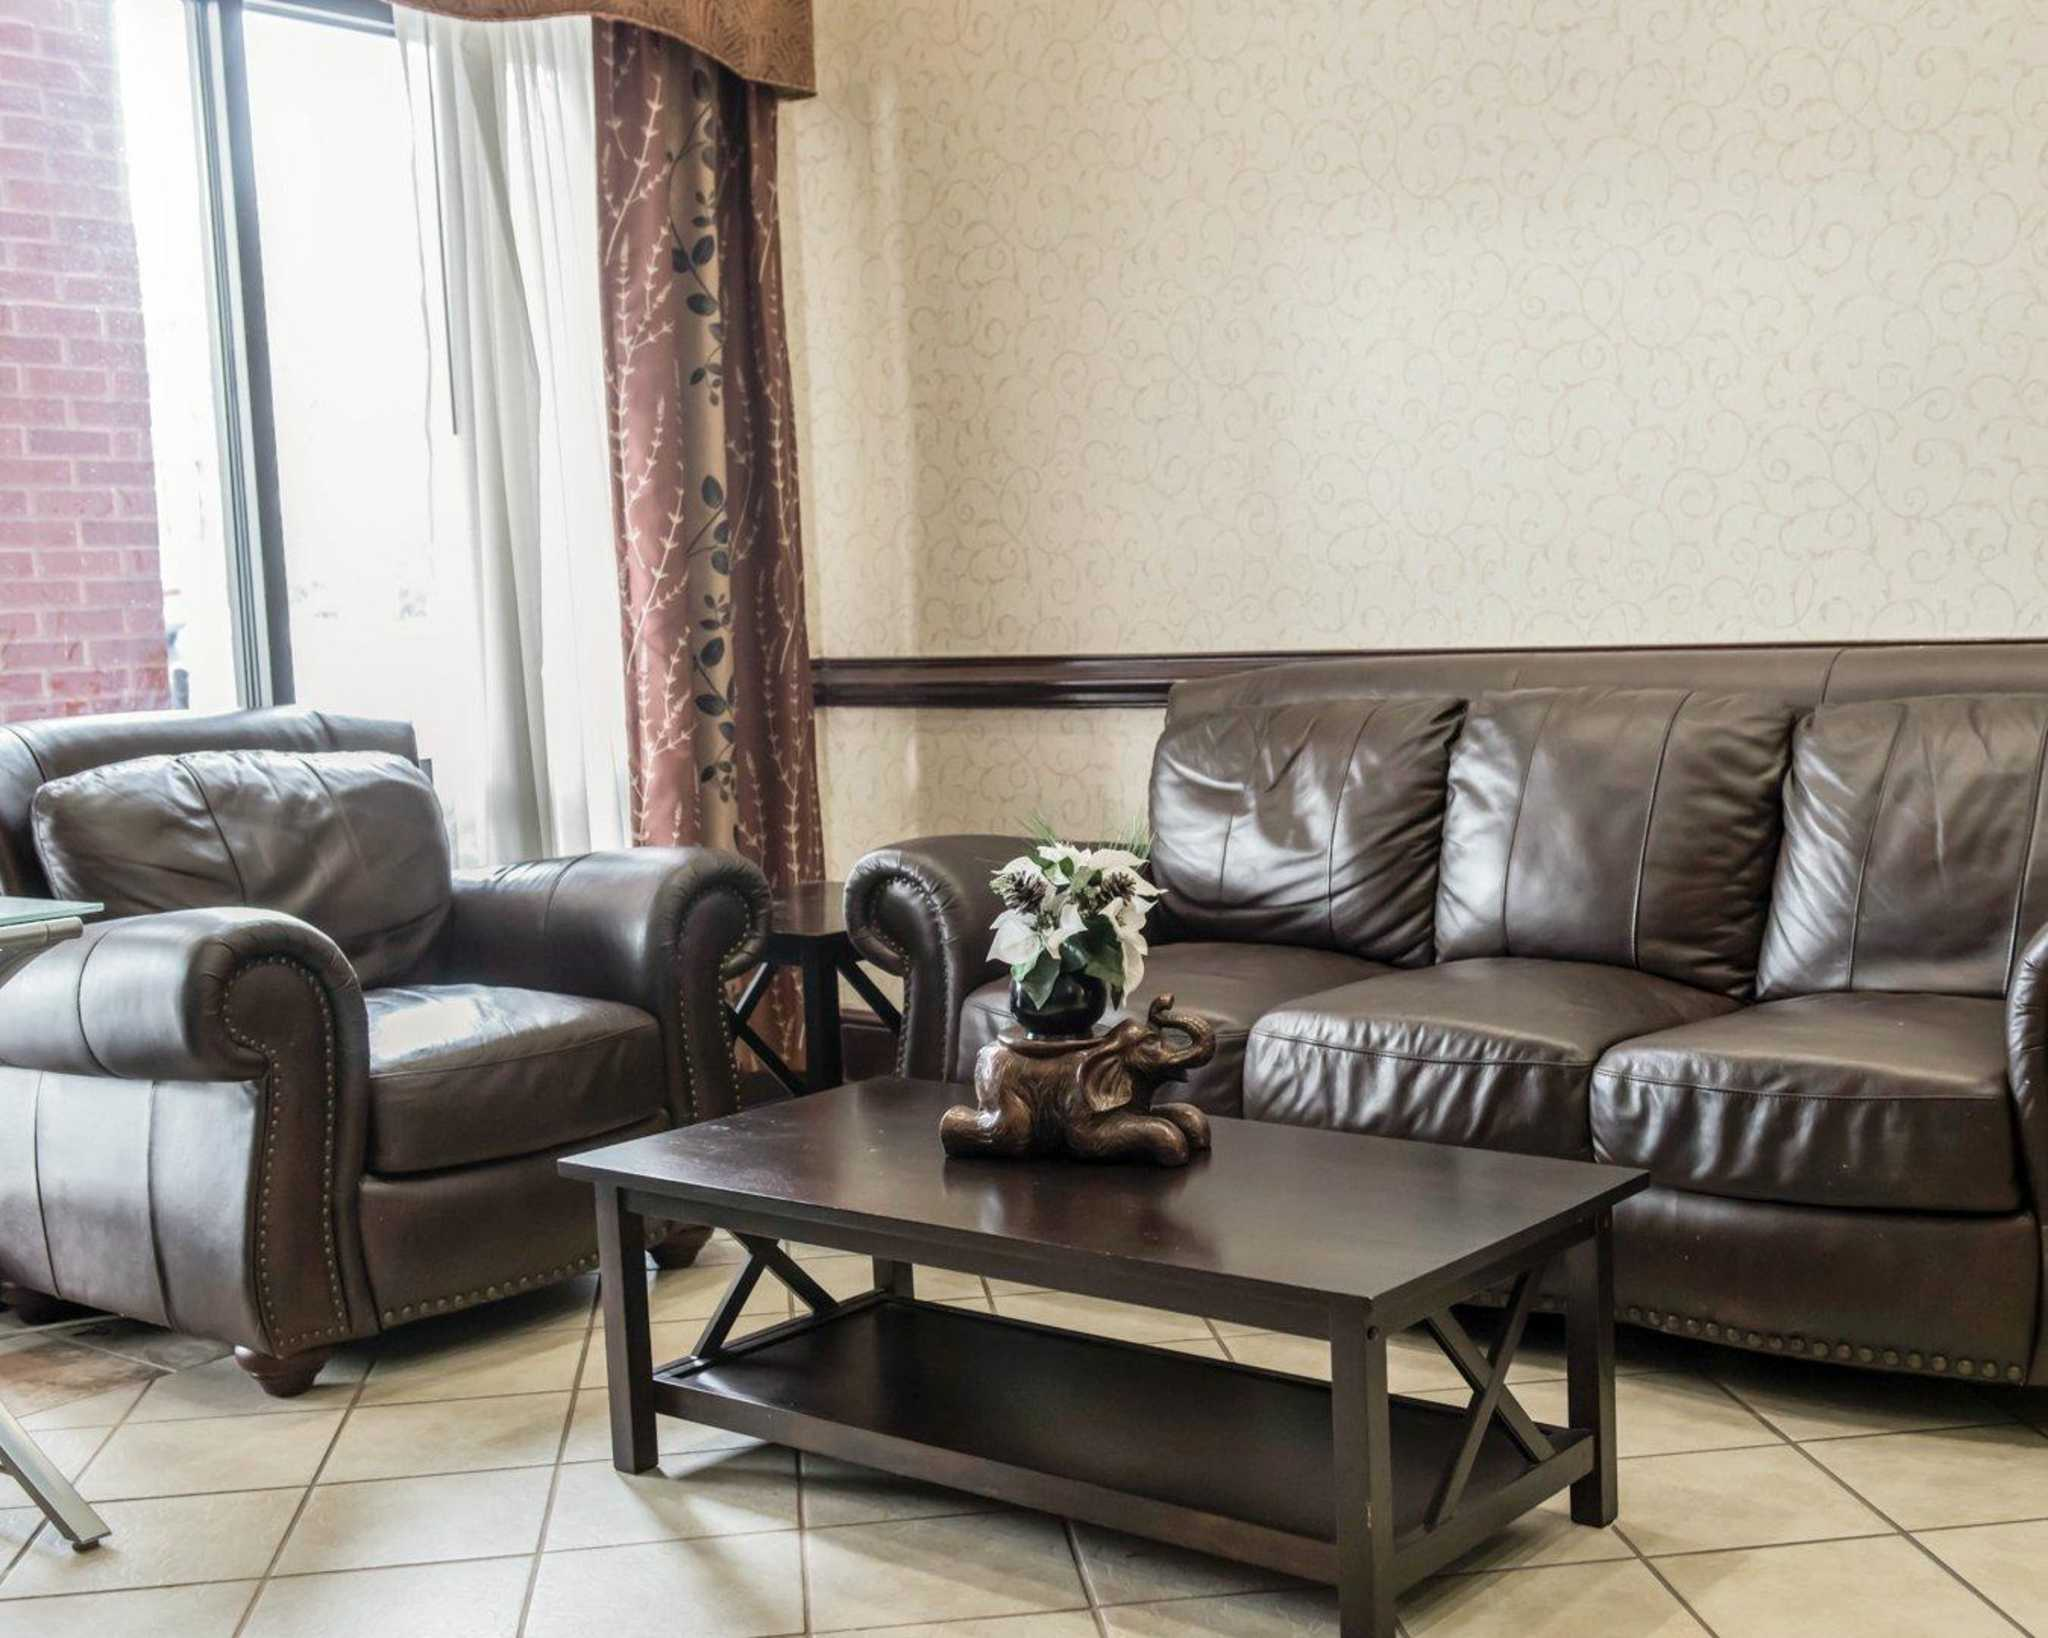 Comfort Inn & Suites Midway - Tallahassee West image 17